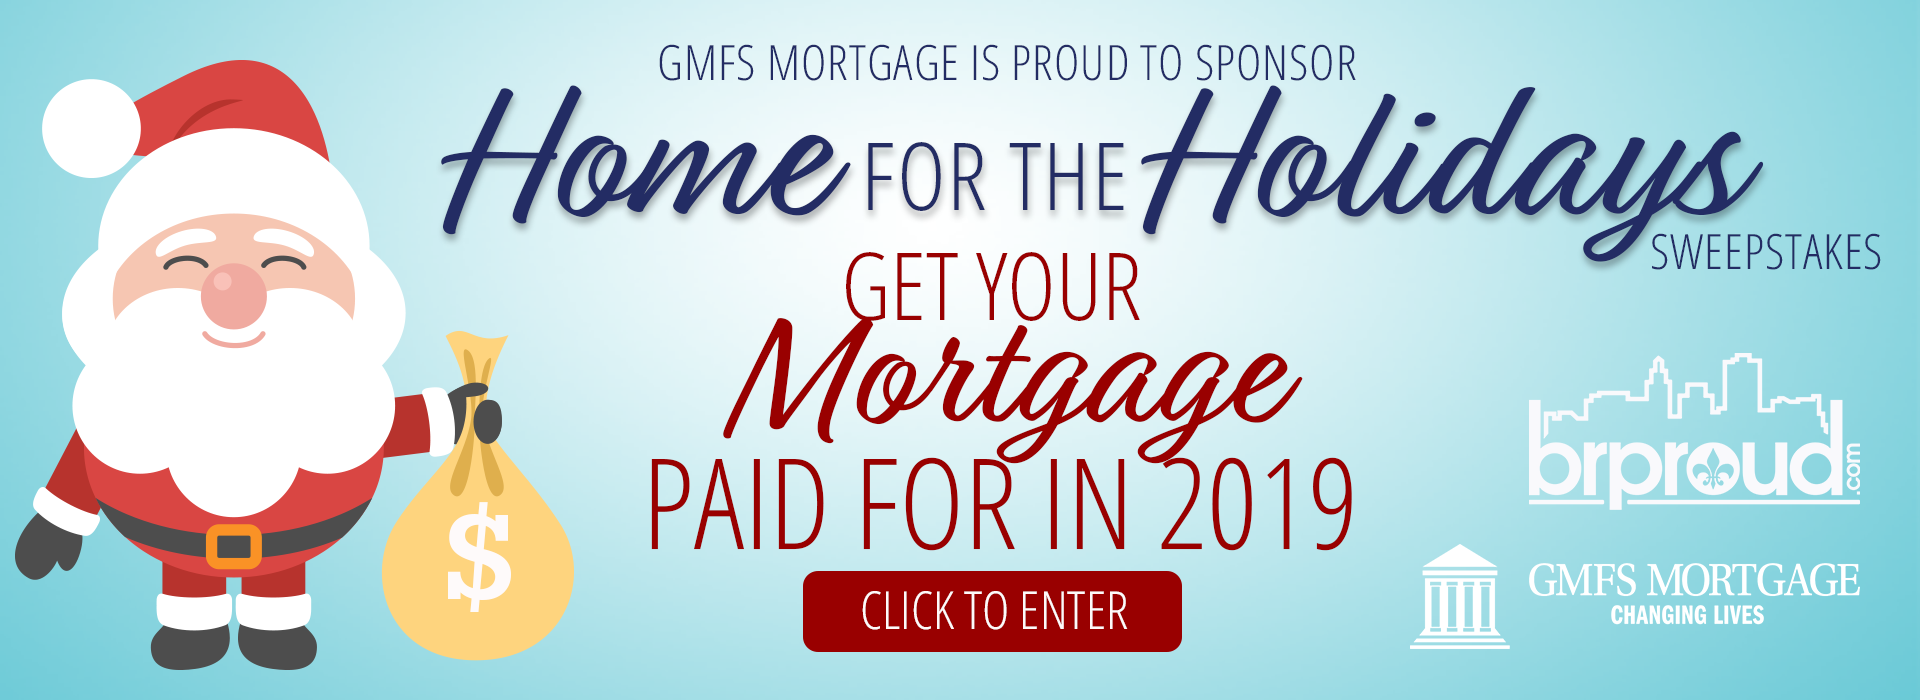 Enter to Win Your Mortgage Paid for a Year!